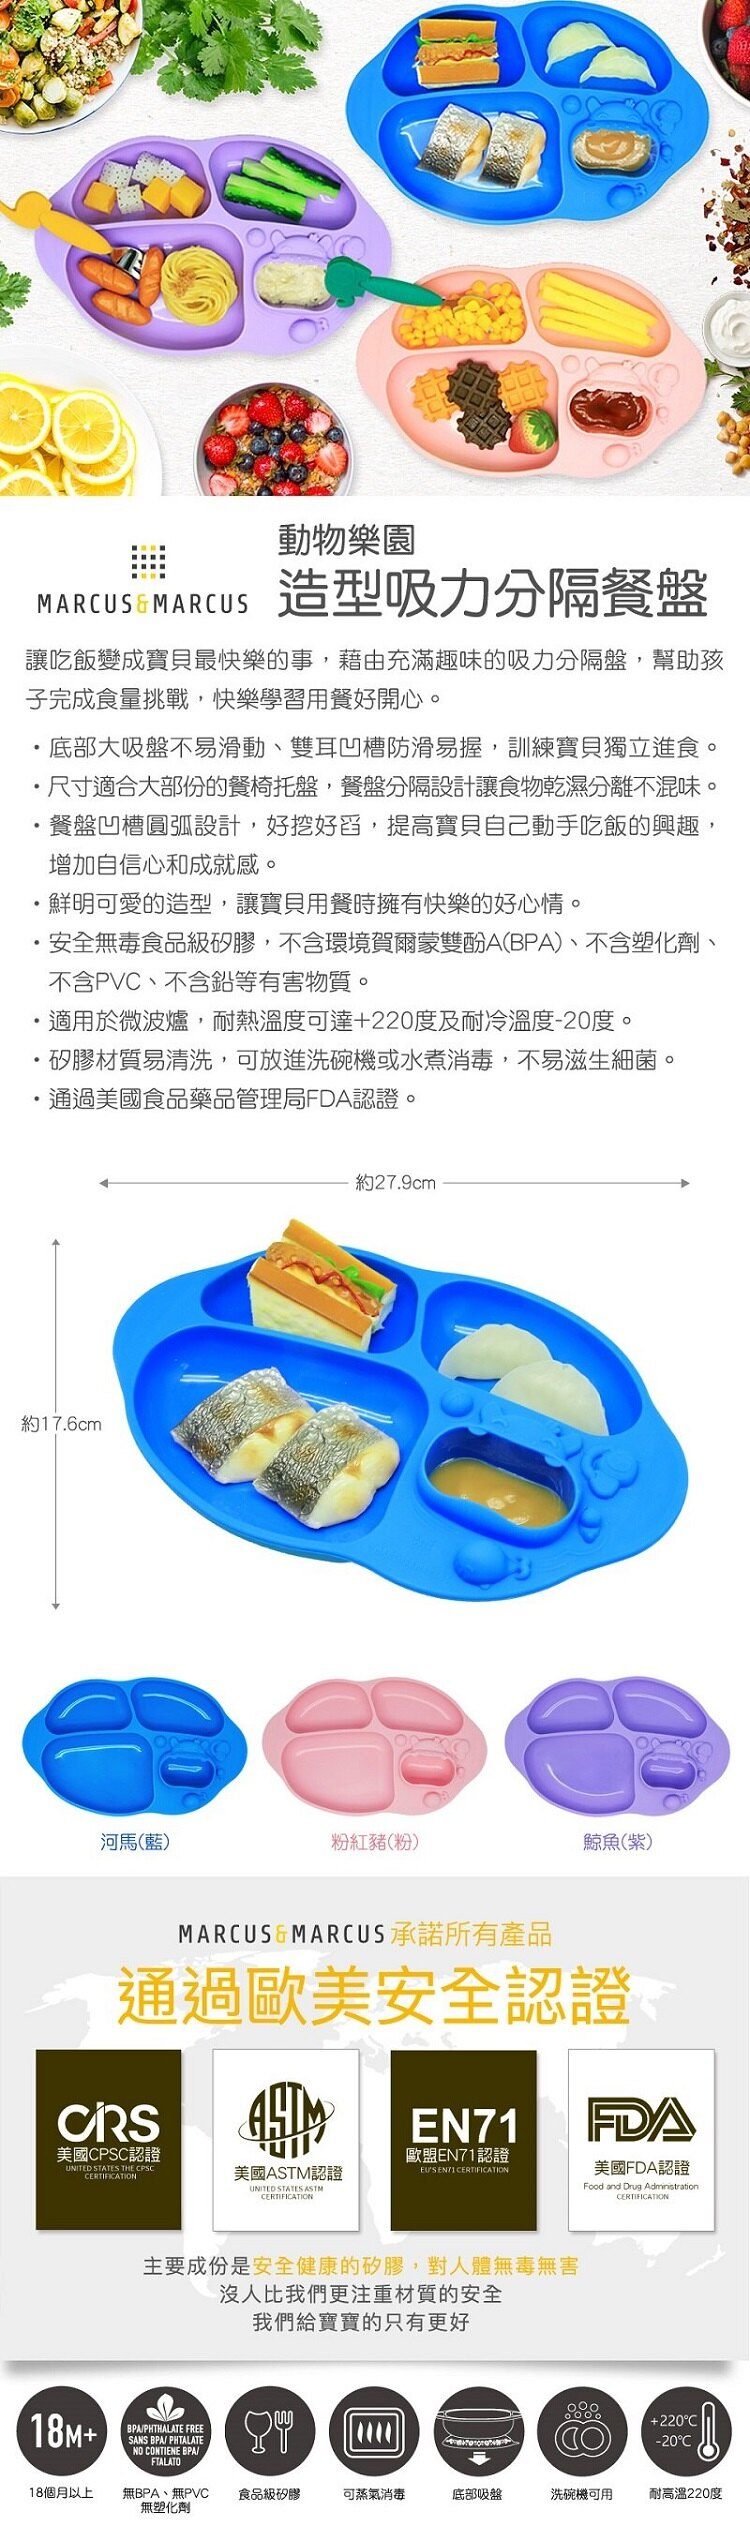 Marcus and Marcus Yummy Dips Suction Divided Plate 加拿大 marcus & marcus 动物乐园吸盘分隔餐盘碟